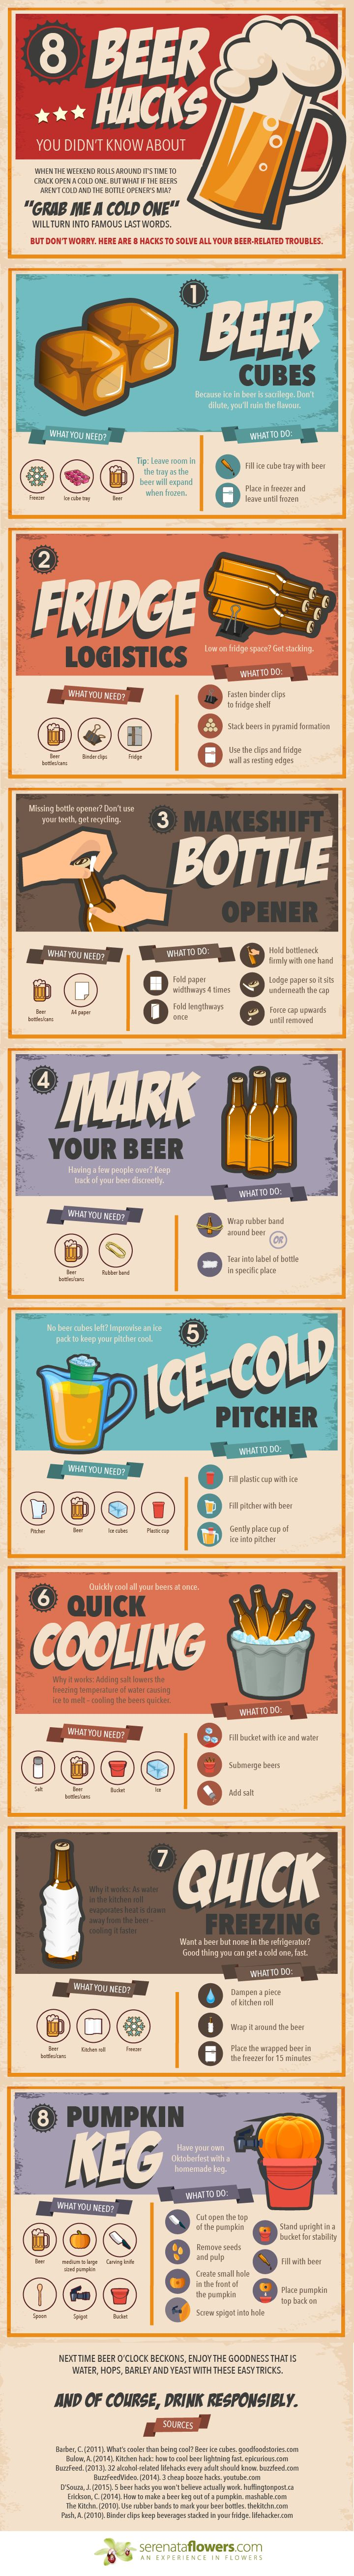 8 Fun Beer Hacks That Will Change the Way You Chug